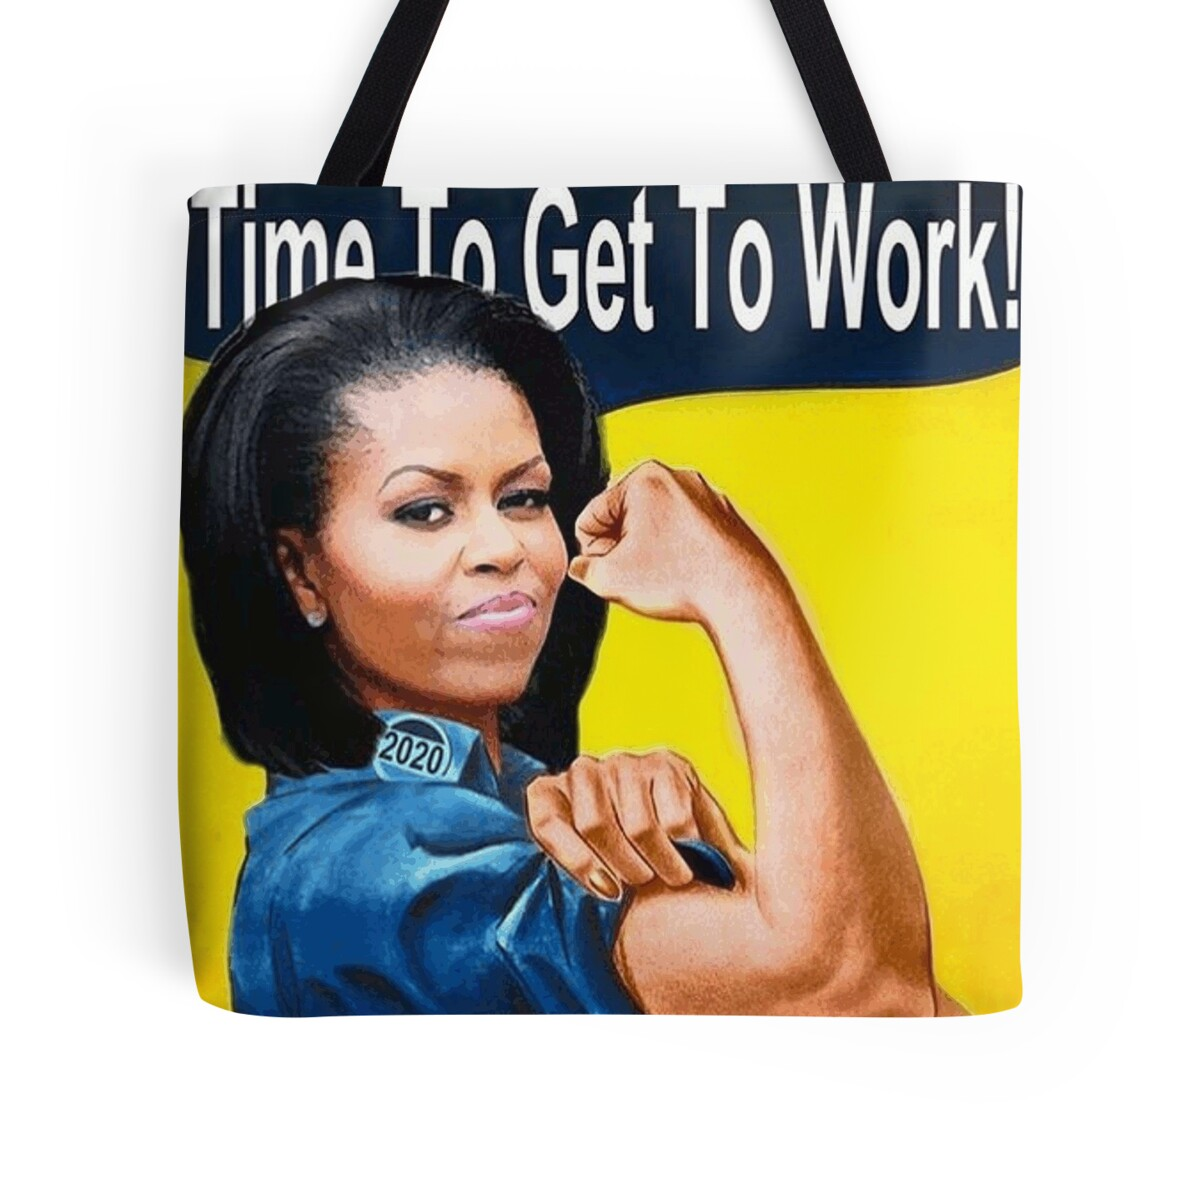 Michelle obama 2020 michelle obama for president tote bags by michelle obama 2020 michelle obama for president by jasonaldo00 kristyandbryce Choice Image